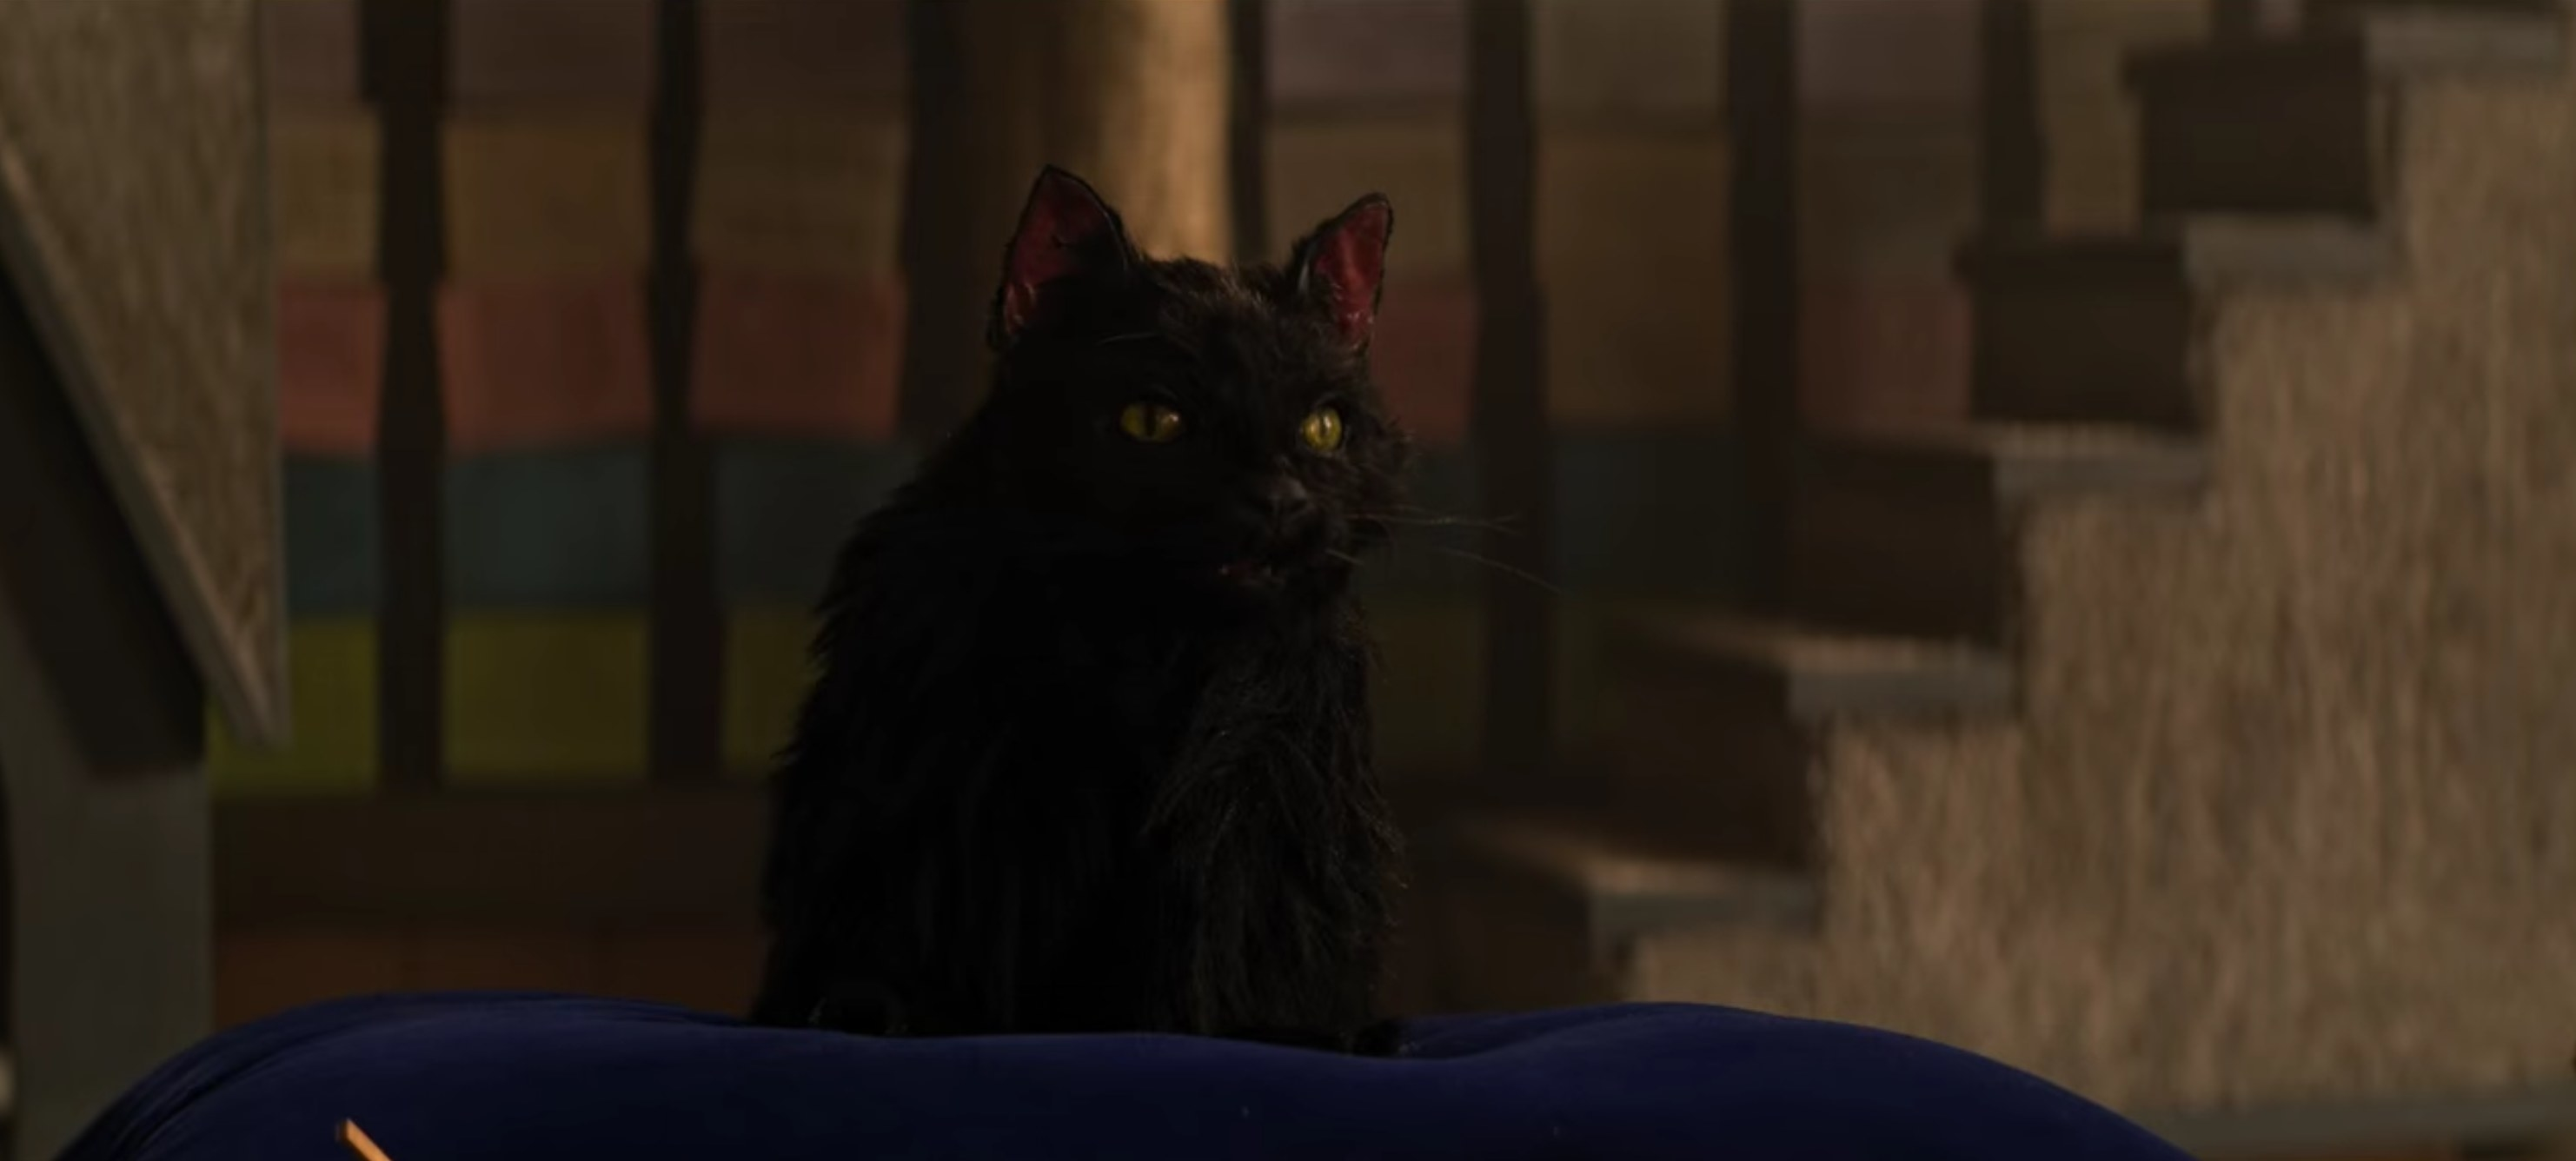 Salem in the parallel universe